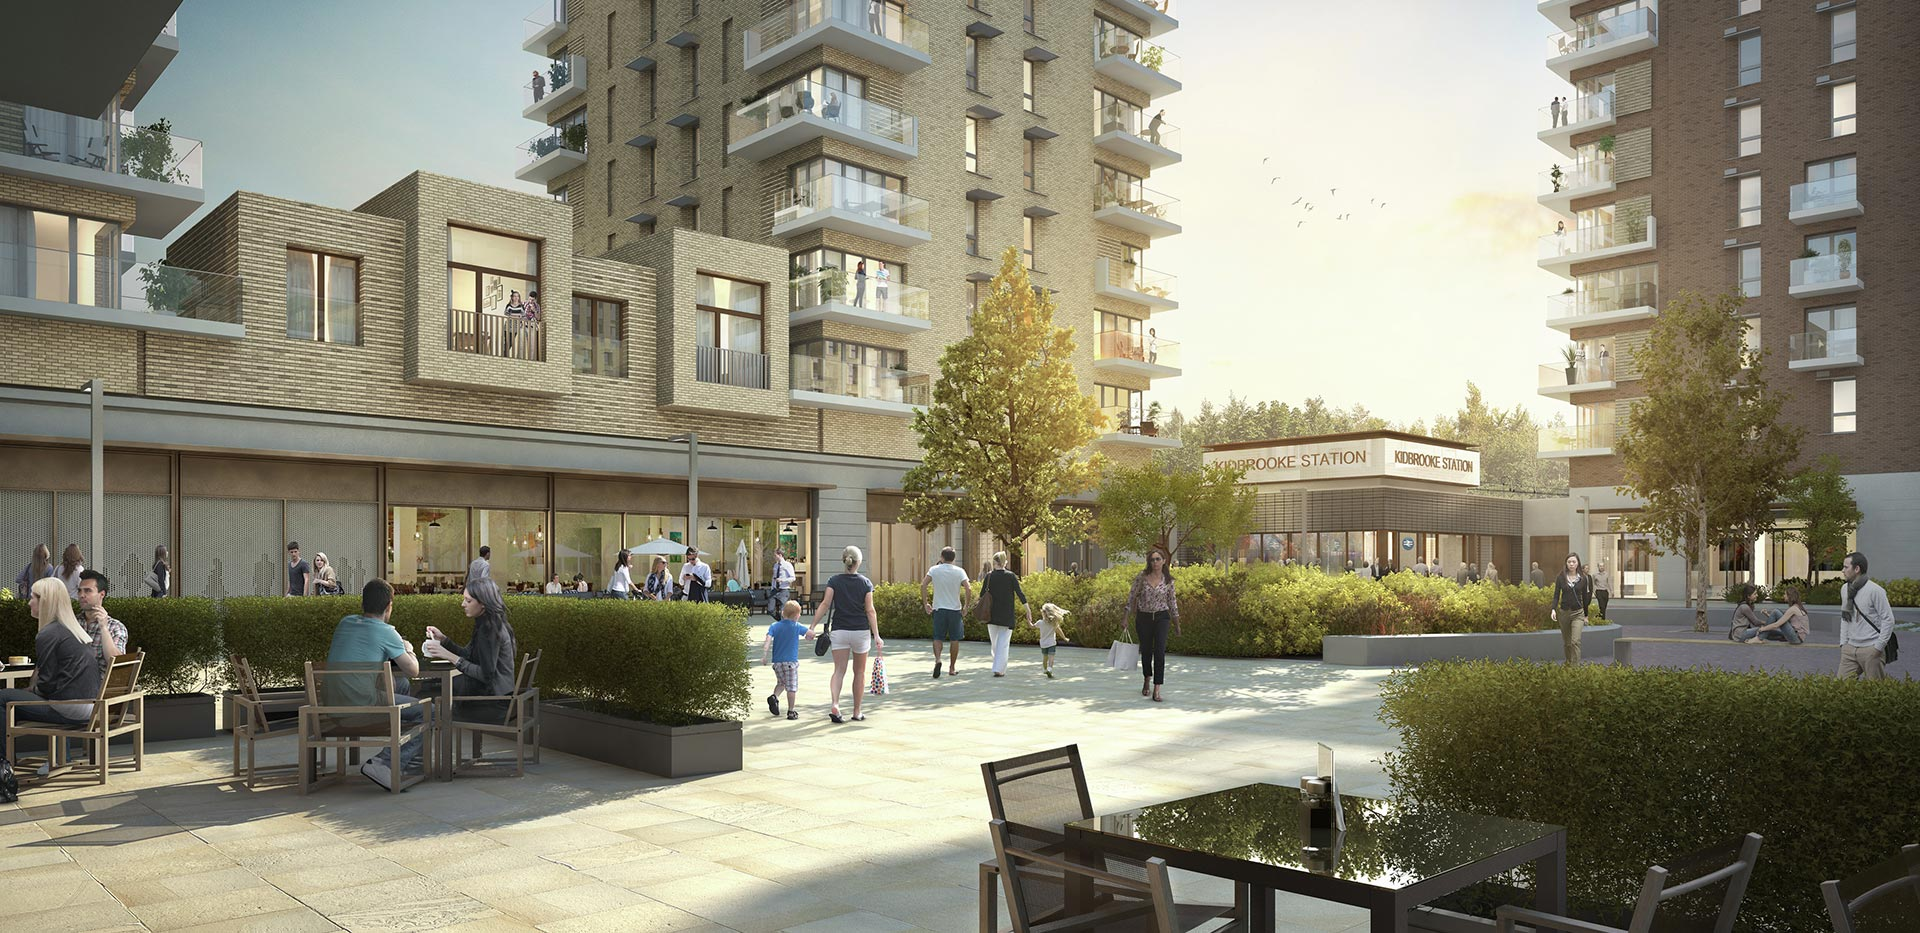 Berkeley, Kidbrooke Village, The Square, Lobby, Exterior